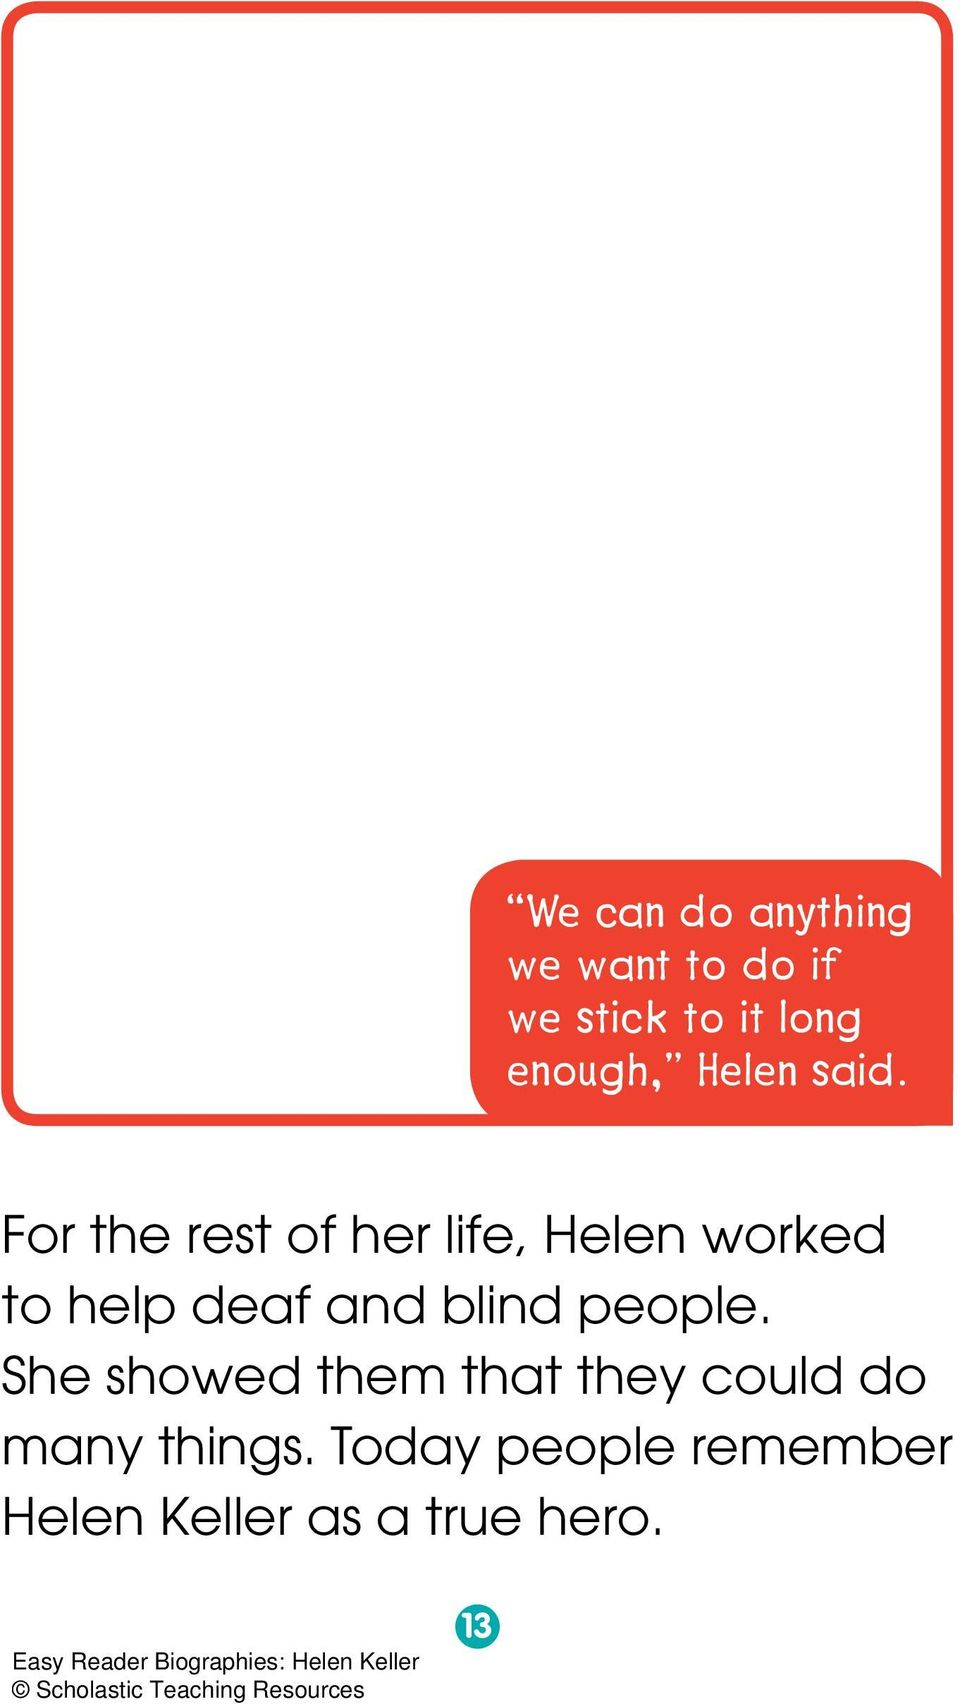 For the rest of her life, Helen worked to help deaf and blind